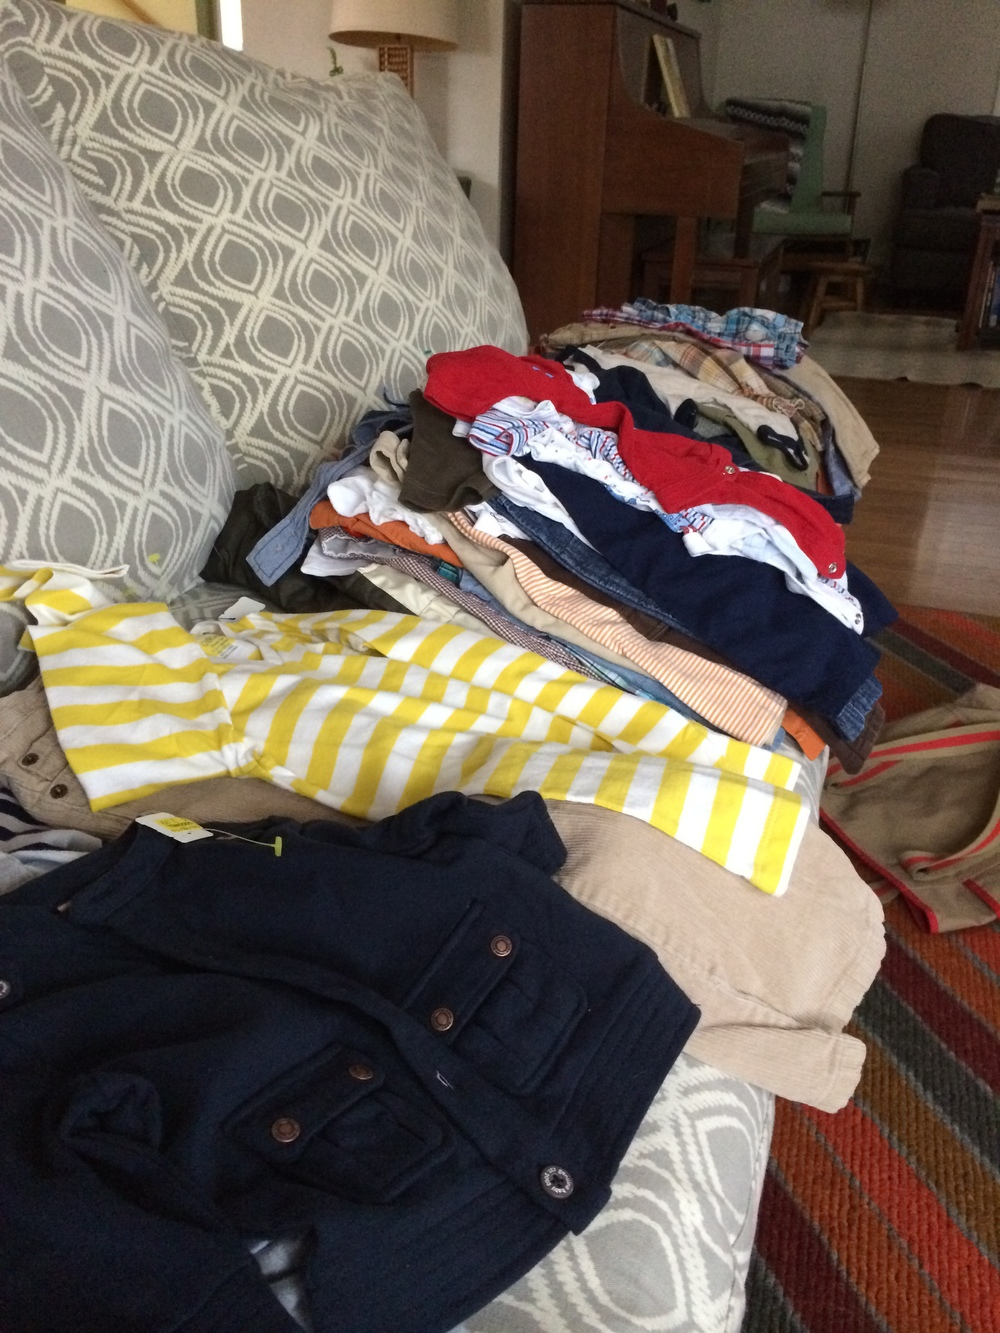 Everything she brought-roughly $110 worth of clothing from Goodwill.